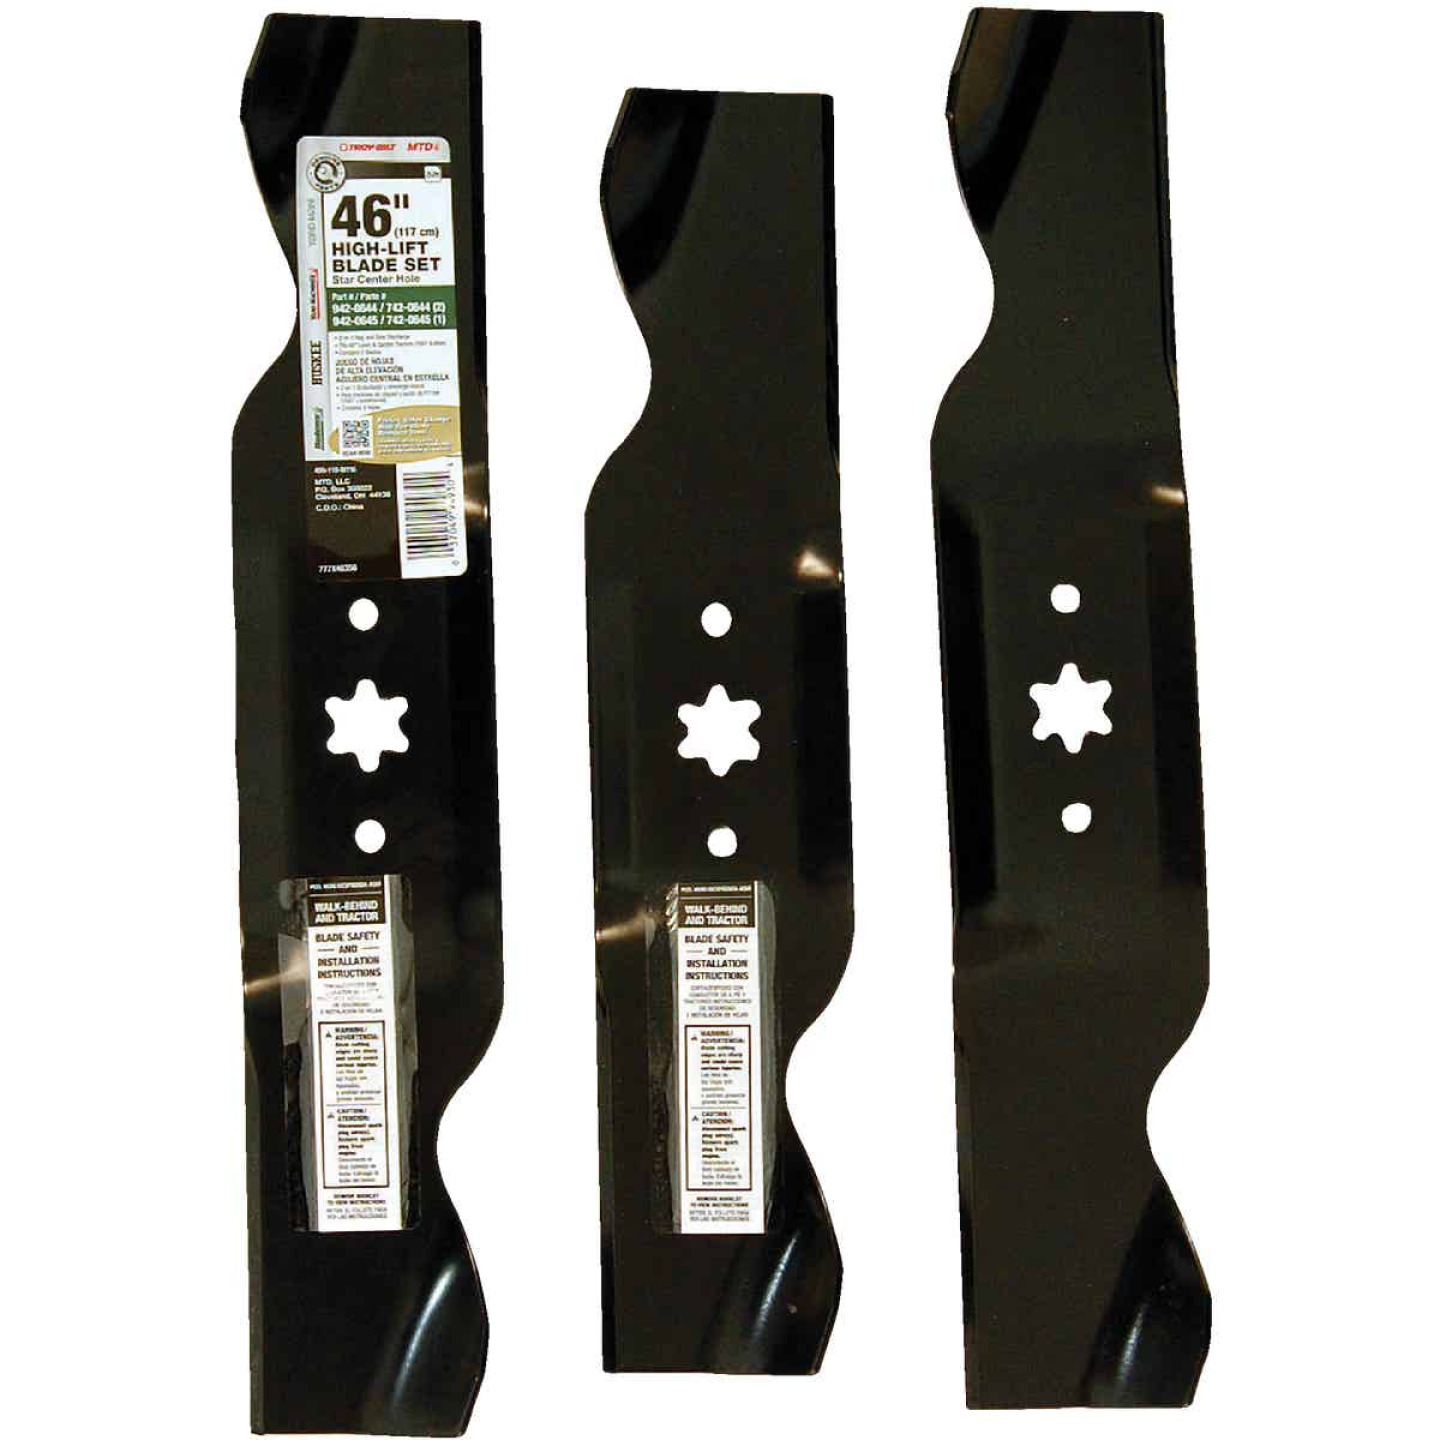 Arnold MTD 14-7/8 In. & 16-9/32 In. Tractor Mower Blade Set Image 1